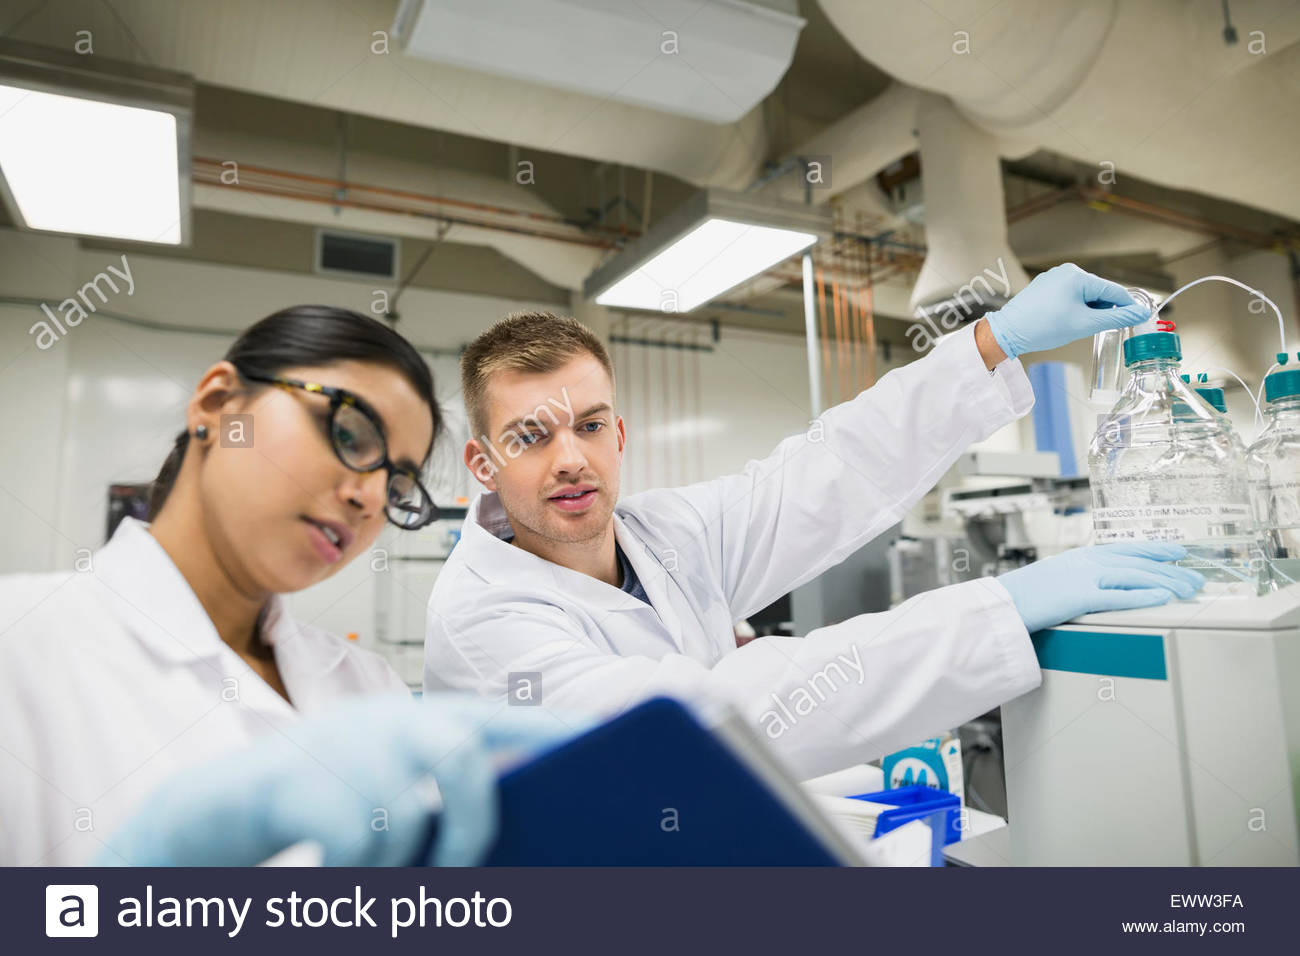 Scientists conducting scientific experiment in laboratory - Stock Image